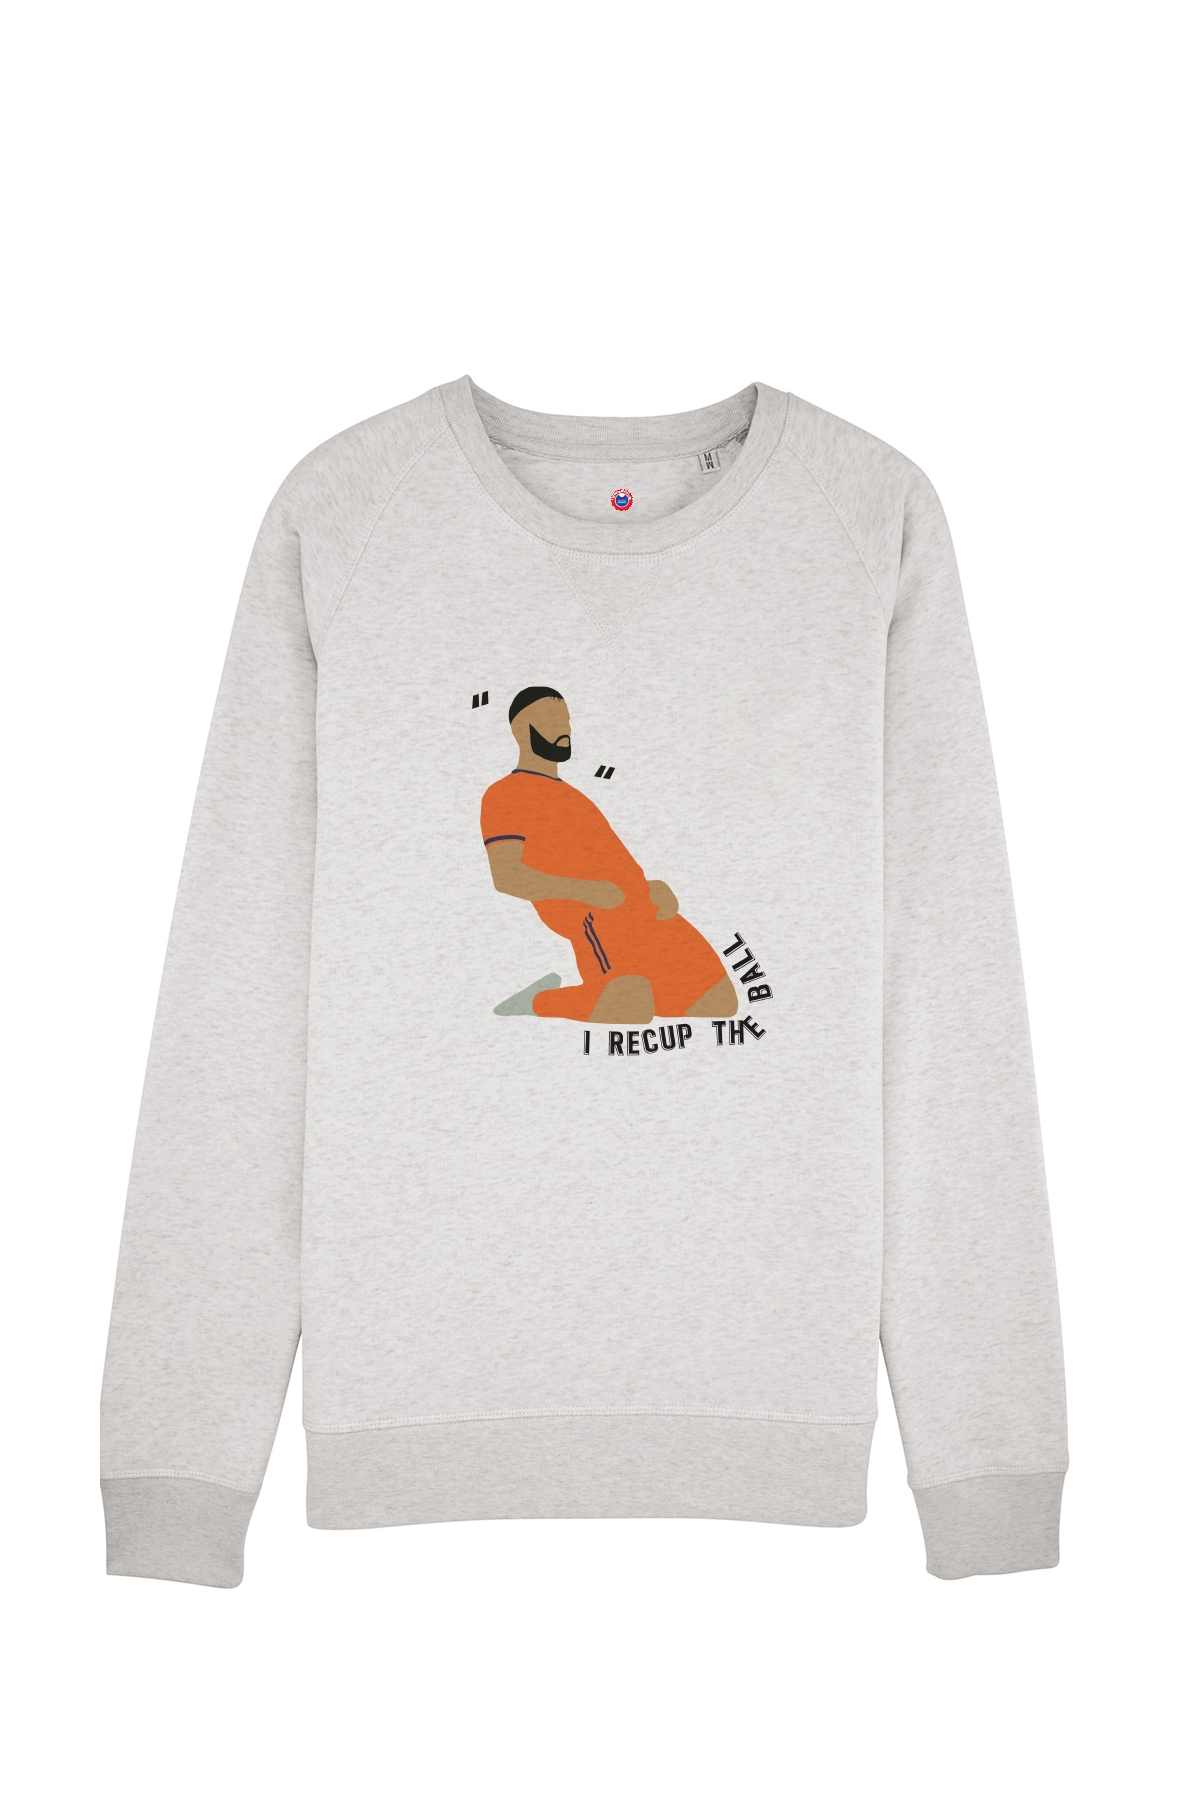 Sweat I Recup the Ball - Taille M - Soldes